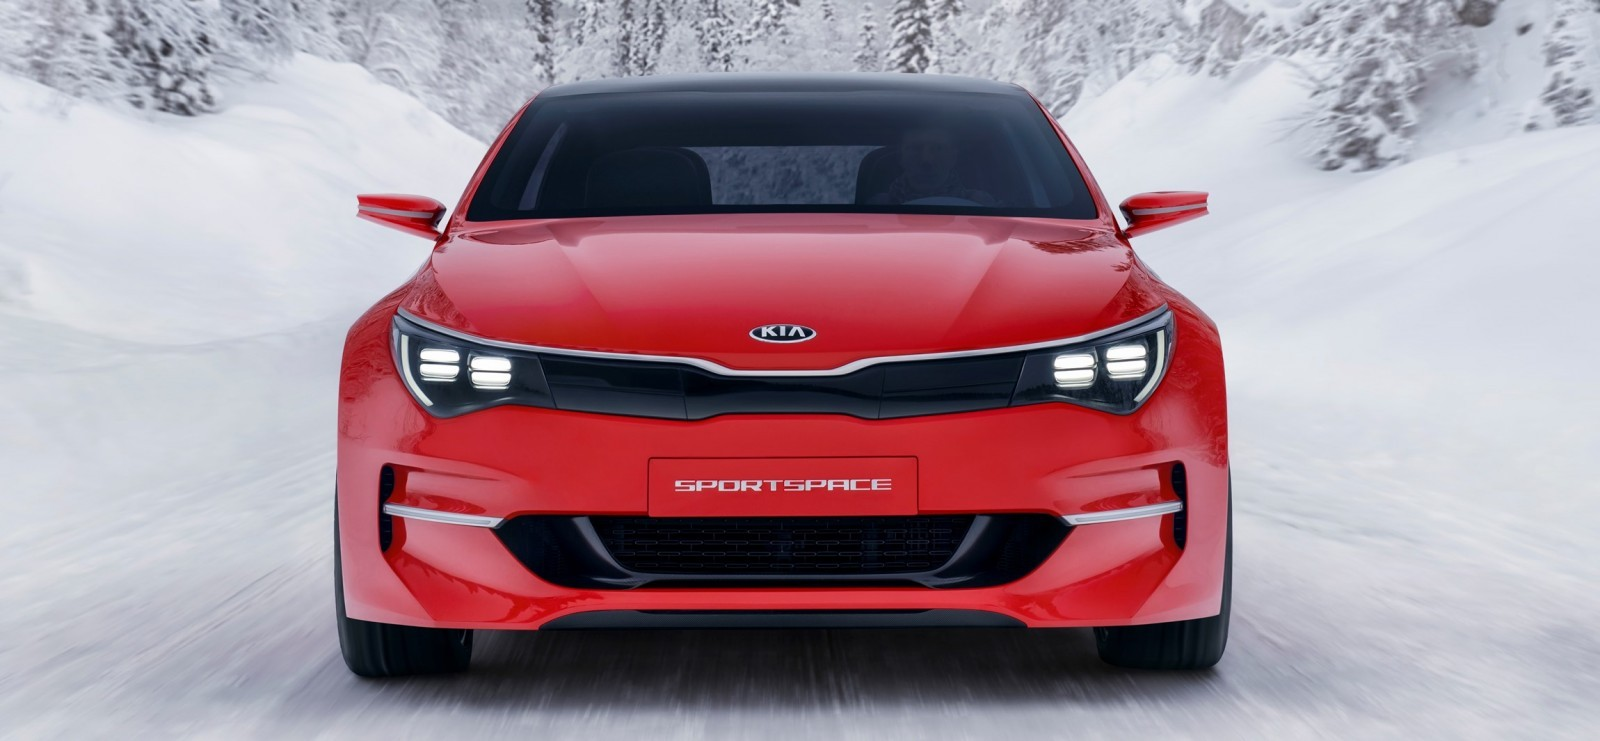 2015 Kia SPORTSPACE Concept - Latest Photos 6